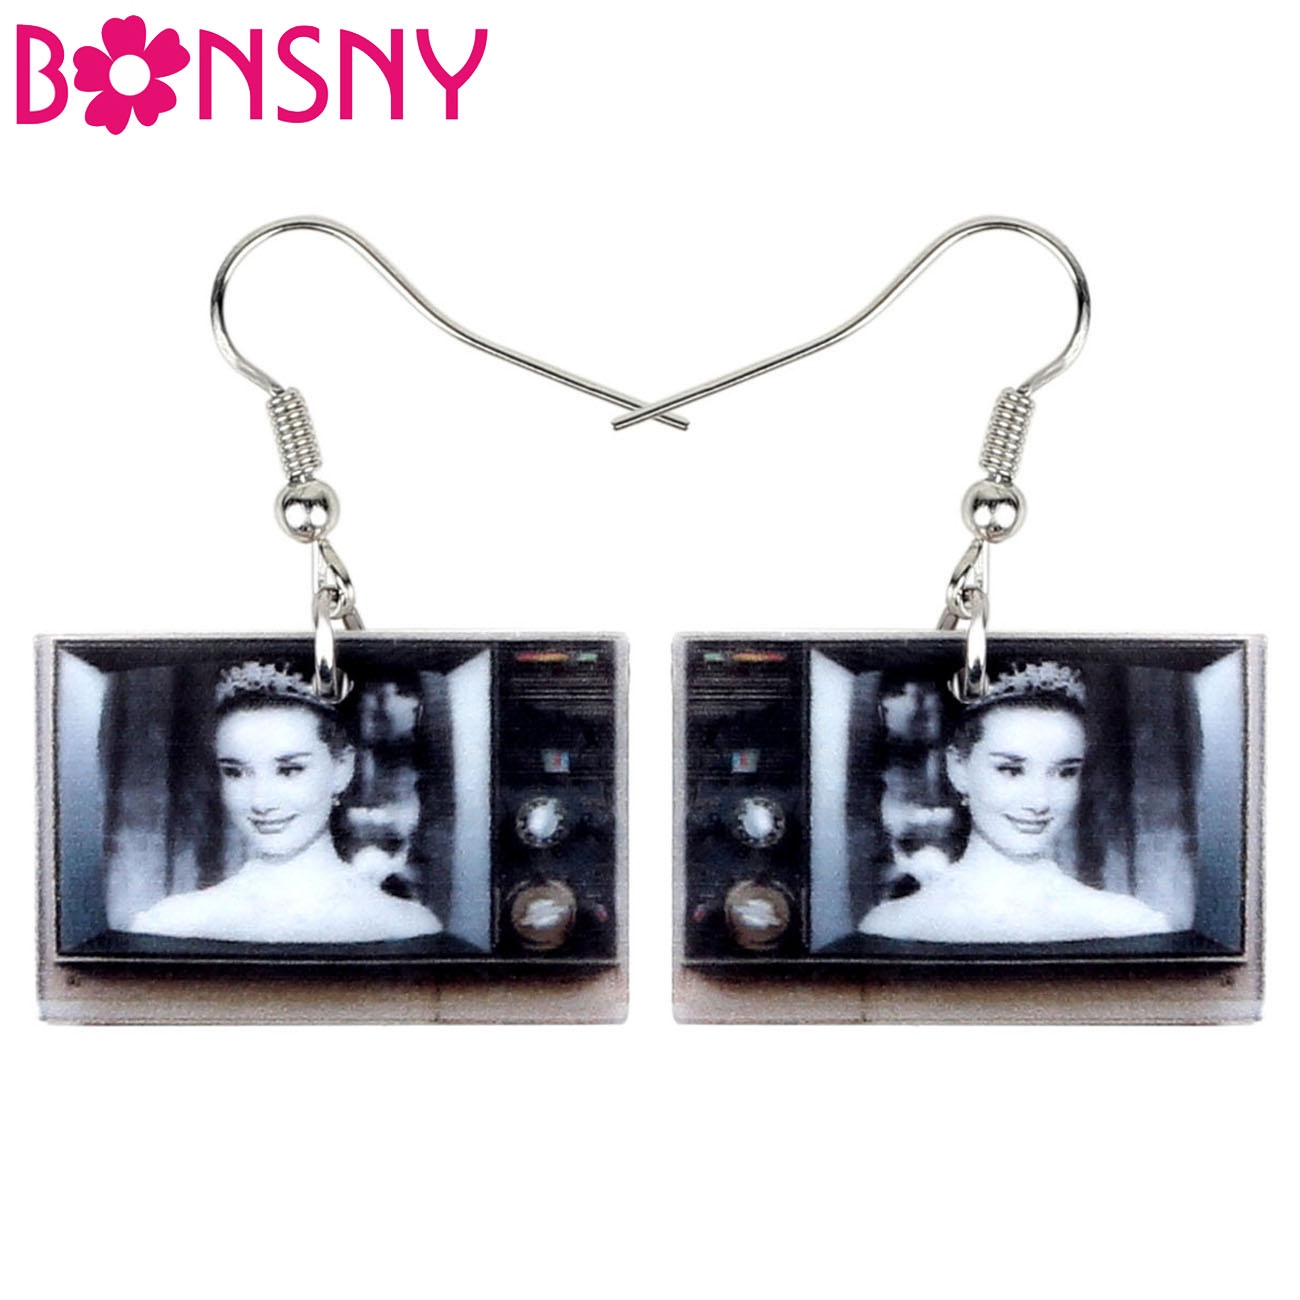 BONSNY Acrylic Vintage Television TV Earrings Drop Dangle Classical Jewelry For Women Girls Teen Kids Charm Gift Accessory Bulk